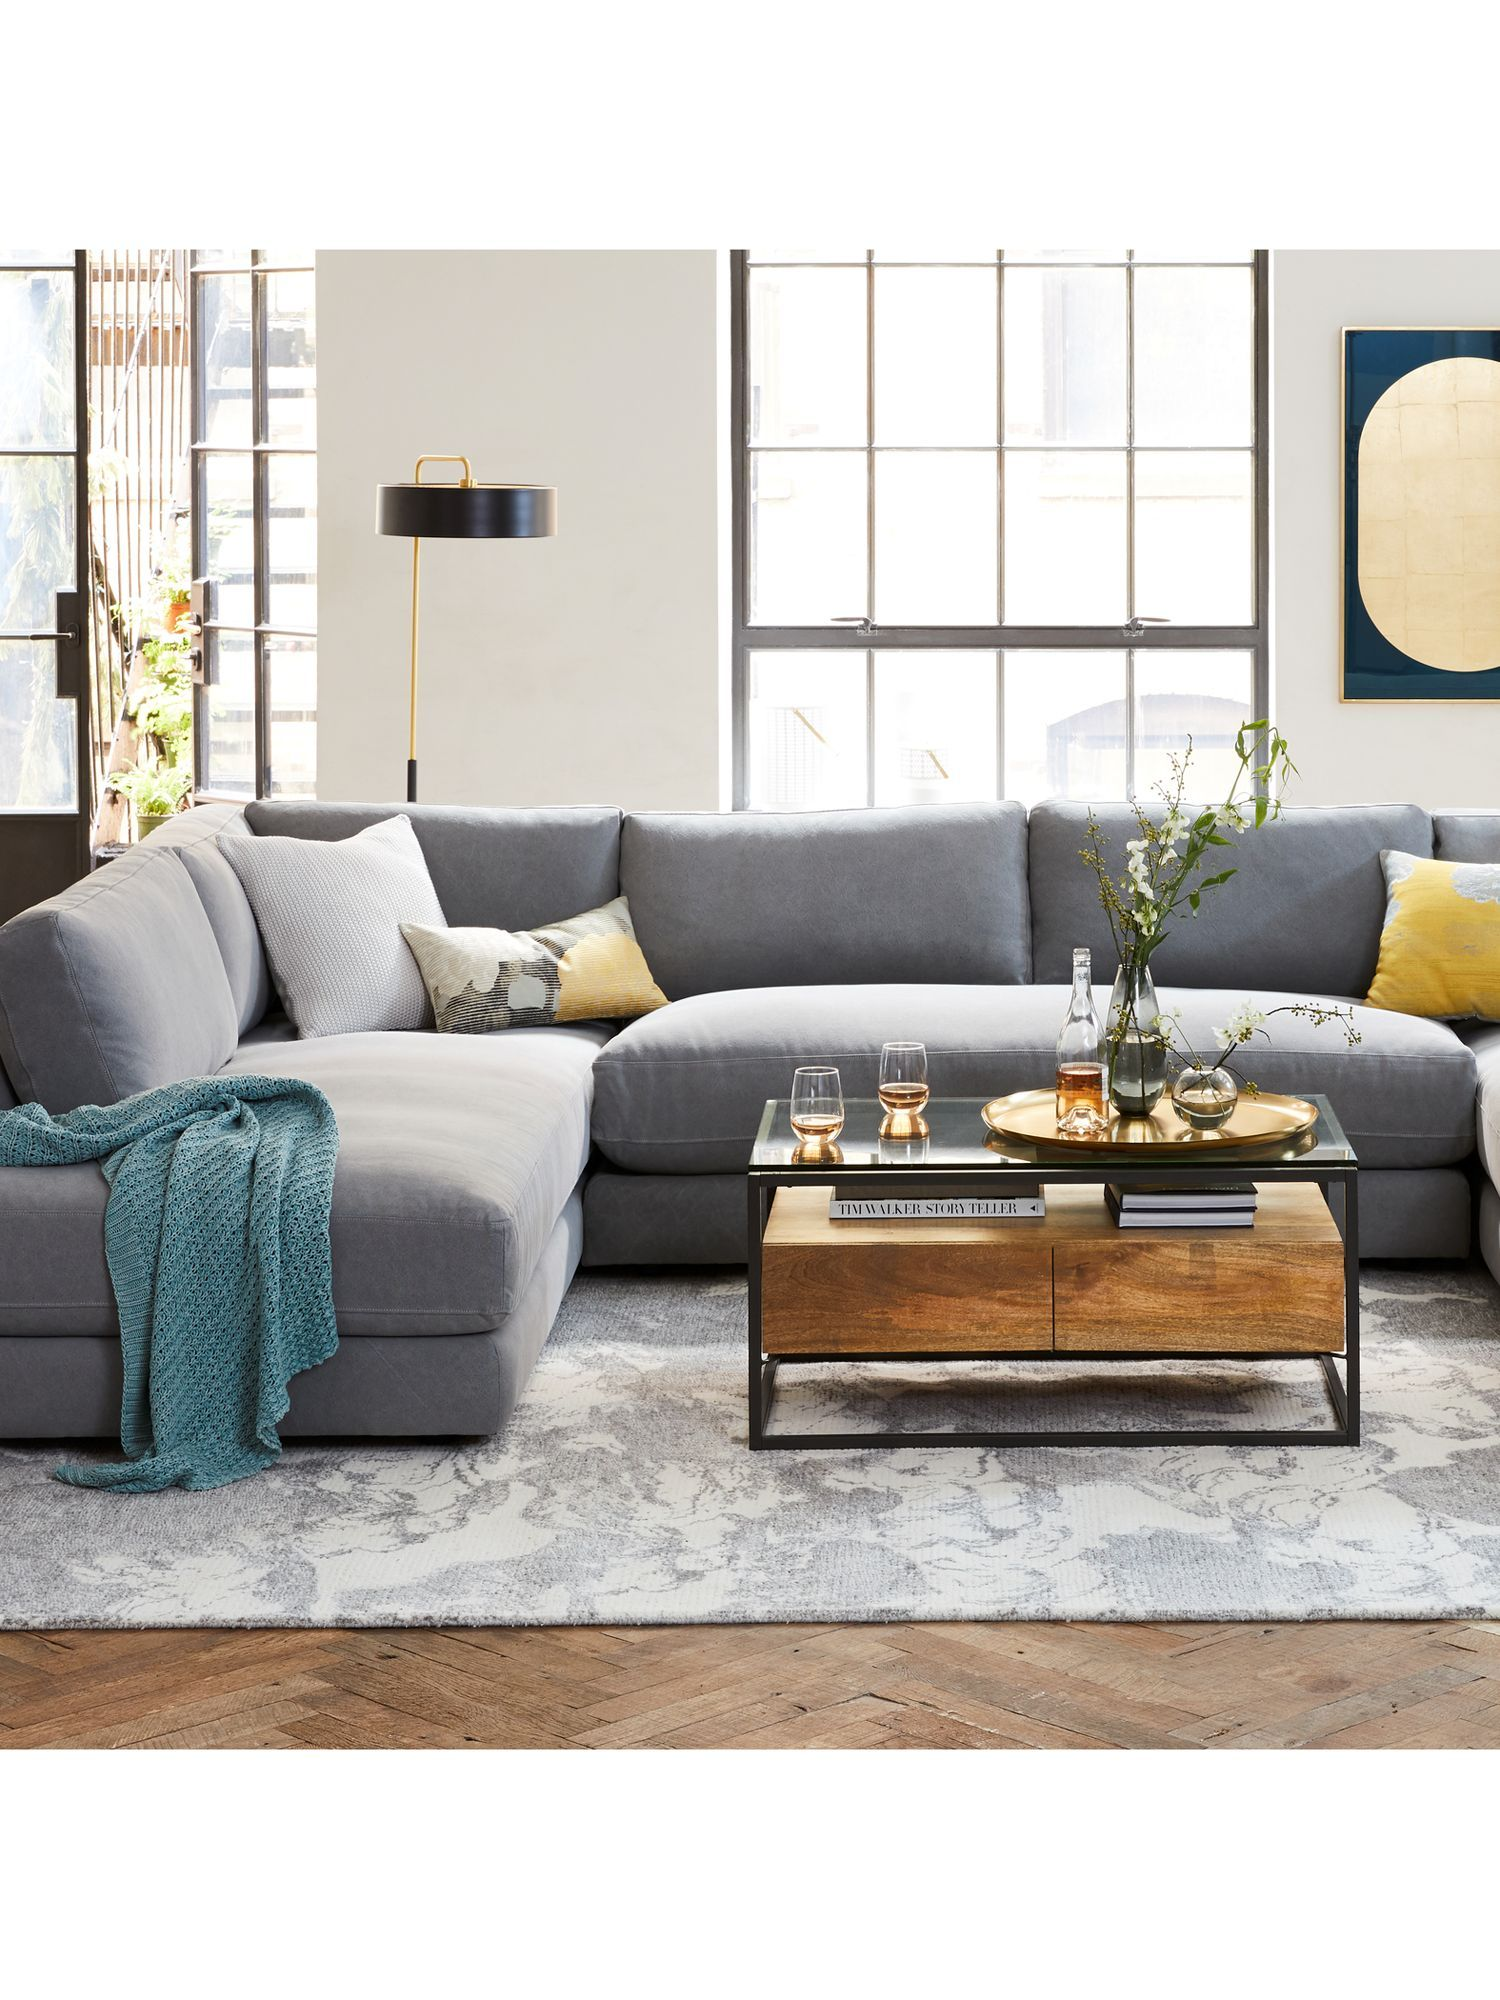 West Elm Industrial Storage Box Frame Coffee Table In 2020 Home Decor Near Me Living Room Inspiration Living Room Designs